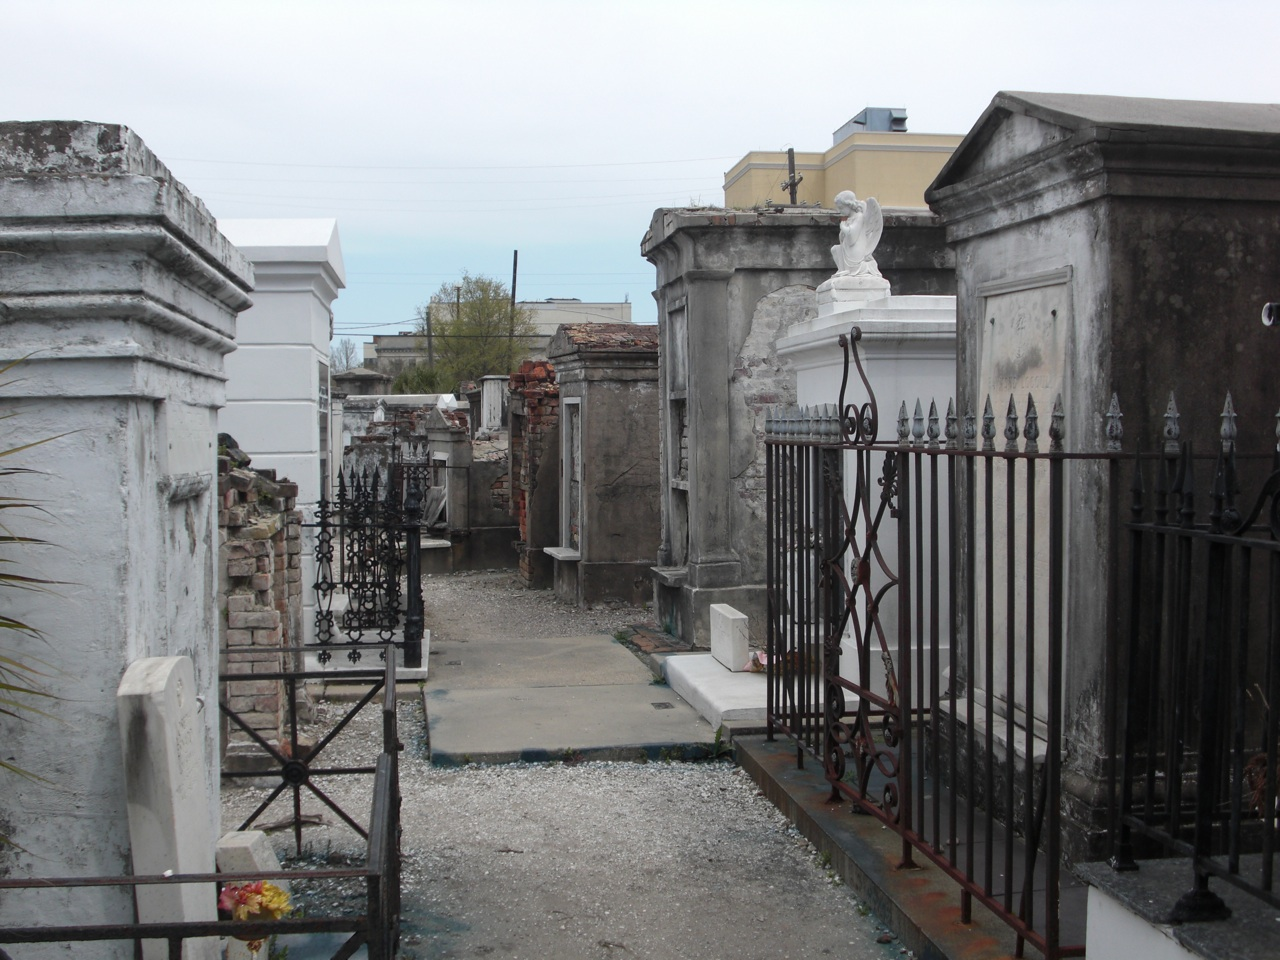 Rows and Rows of Tombs